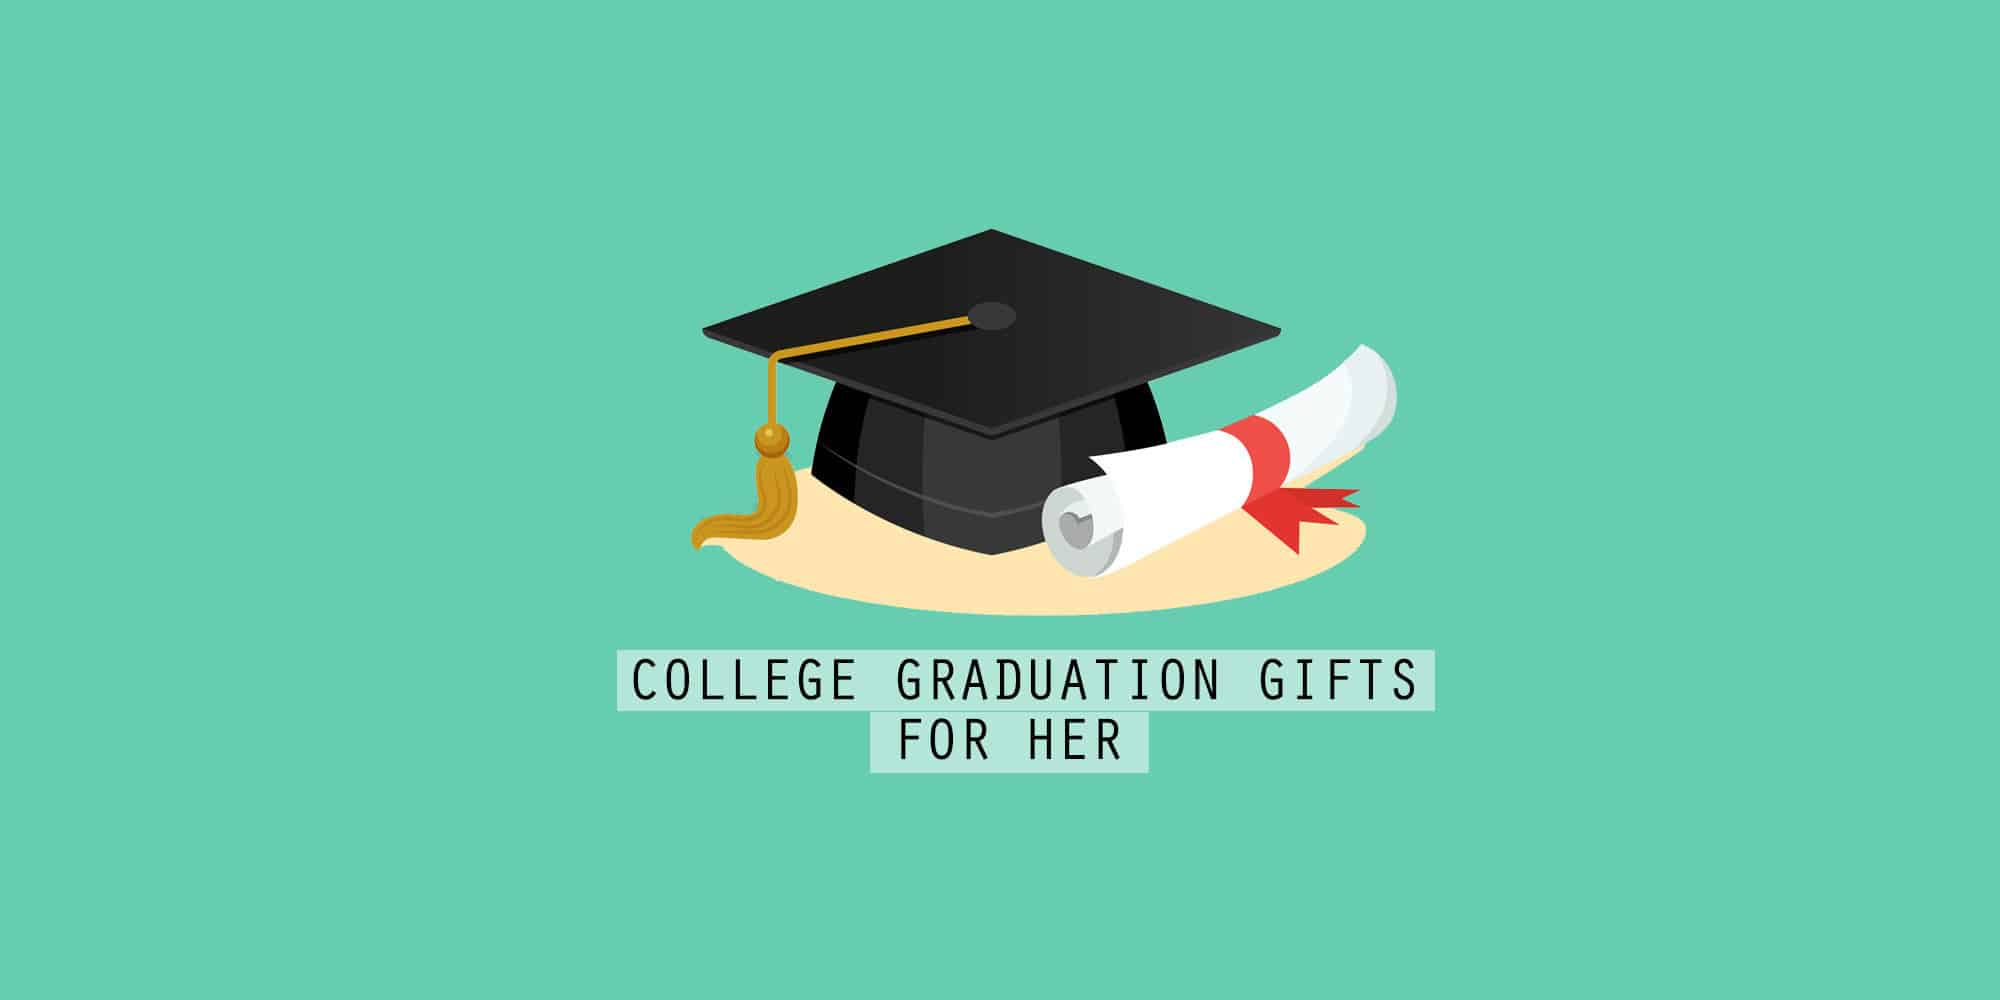 40 Best College Graduation Gifts For Her That Every Graduate Will Love (2021)